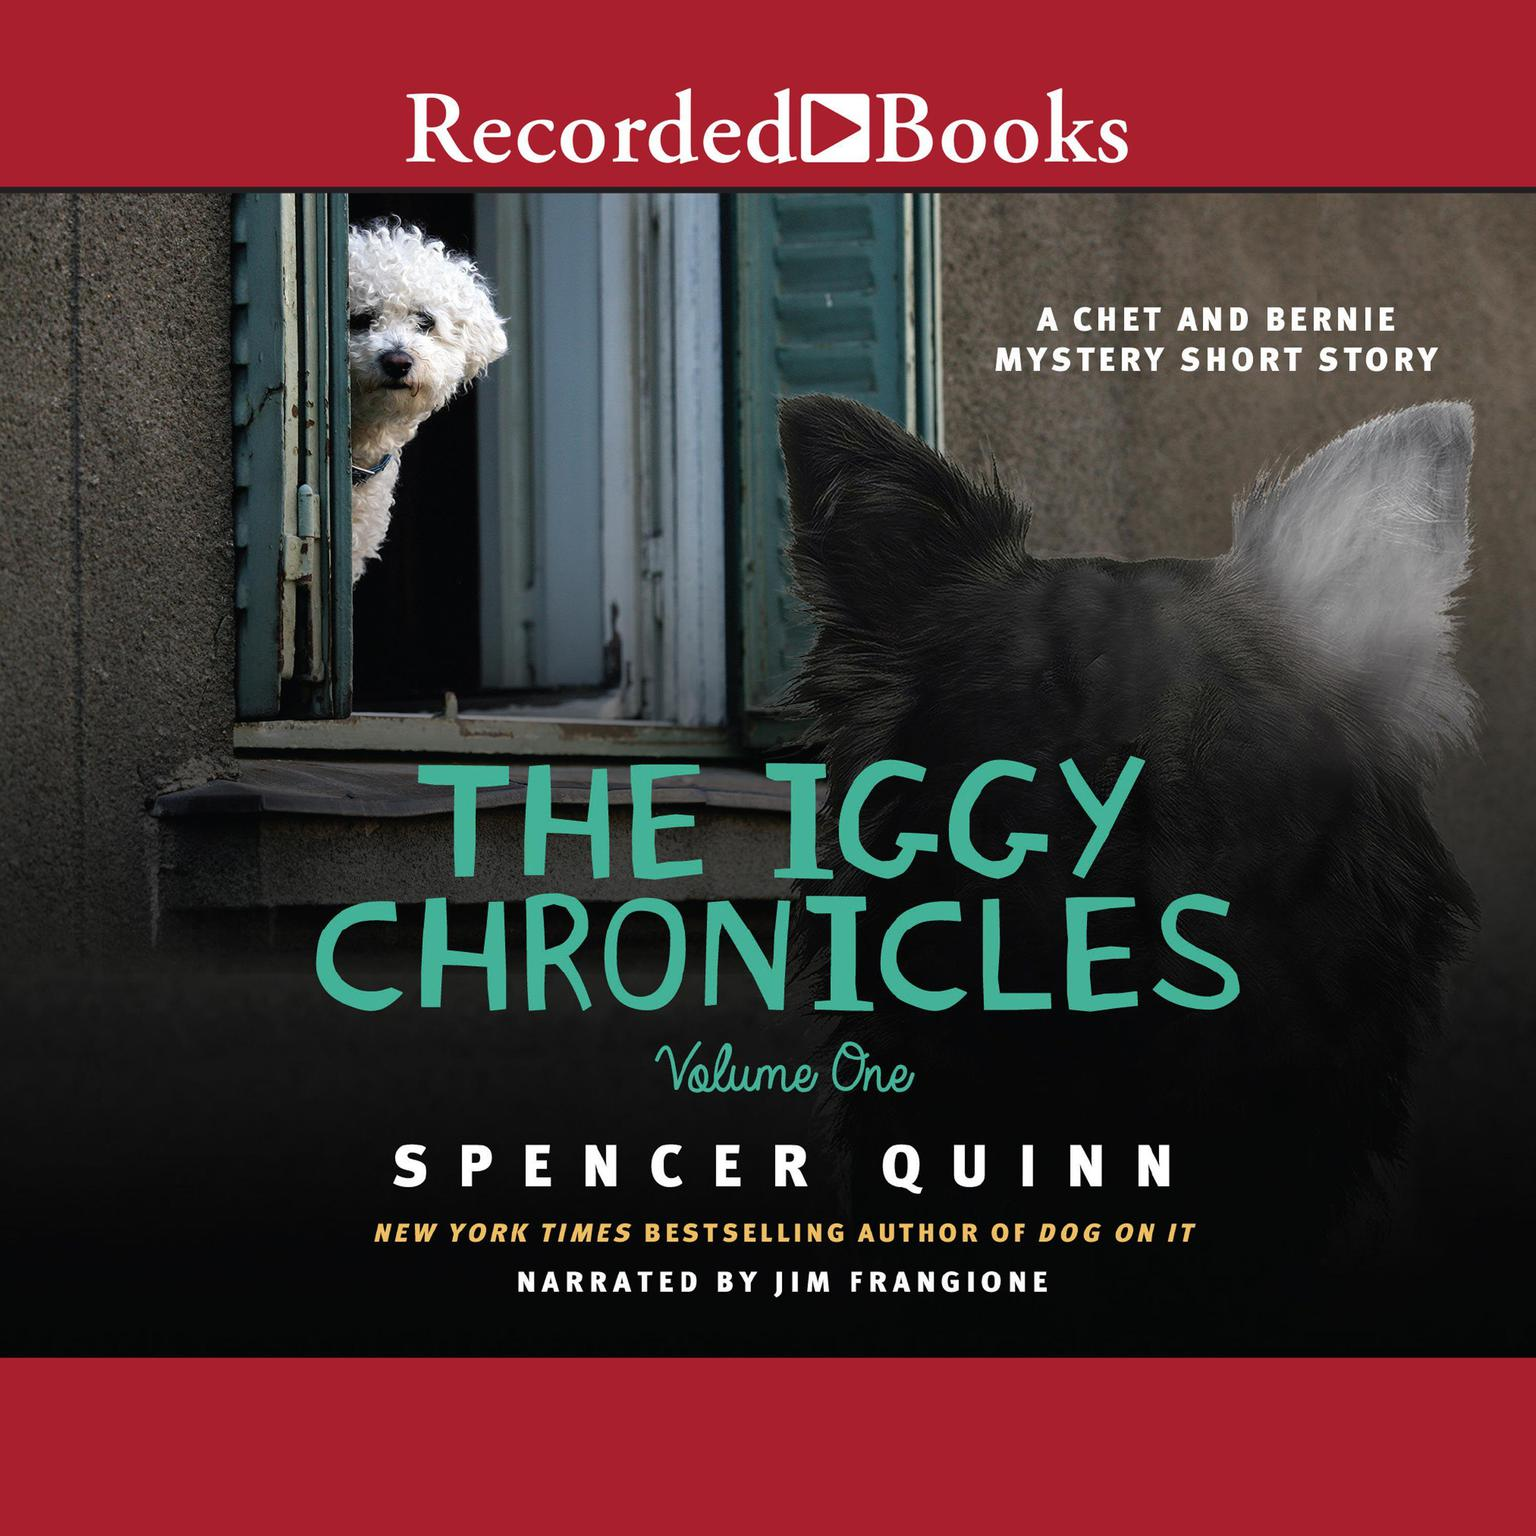 Printable The Iggy Chronicles, Vol. 1 Audiobook Cover Art